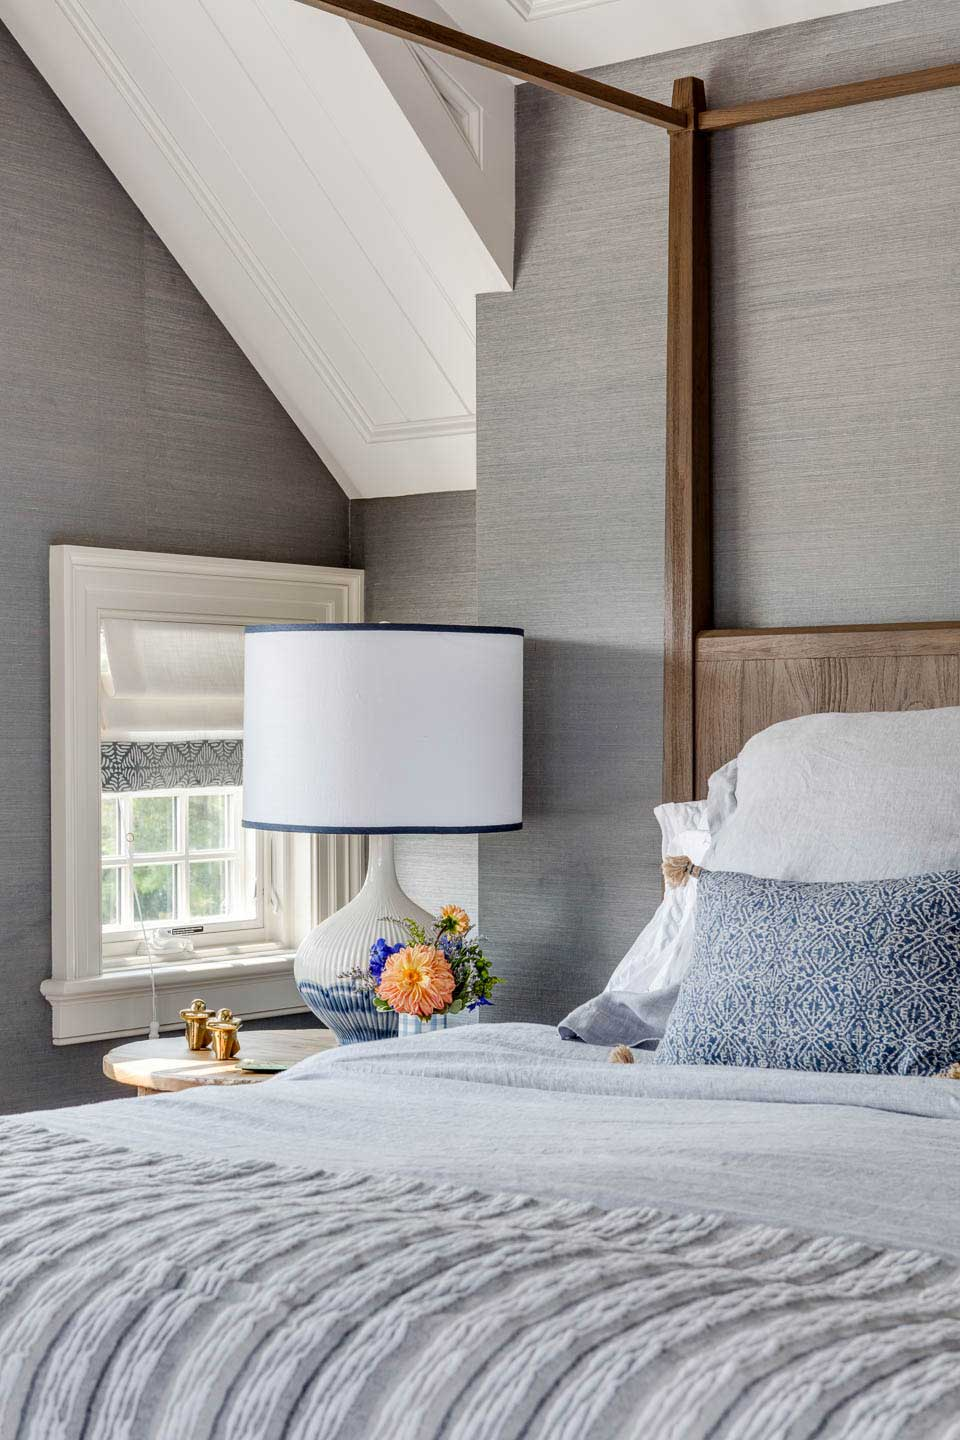 cape cod, cape house, four poster bed, wallpaper, texture